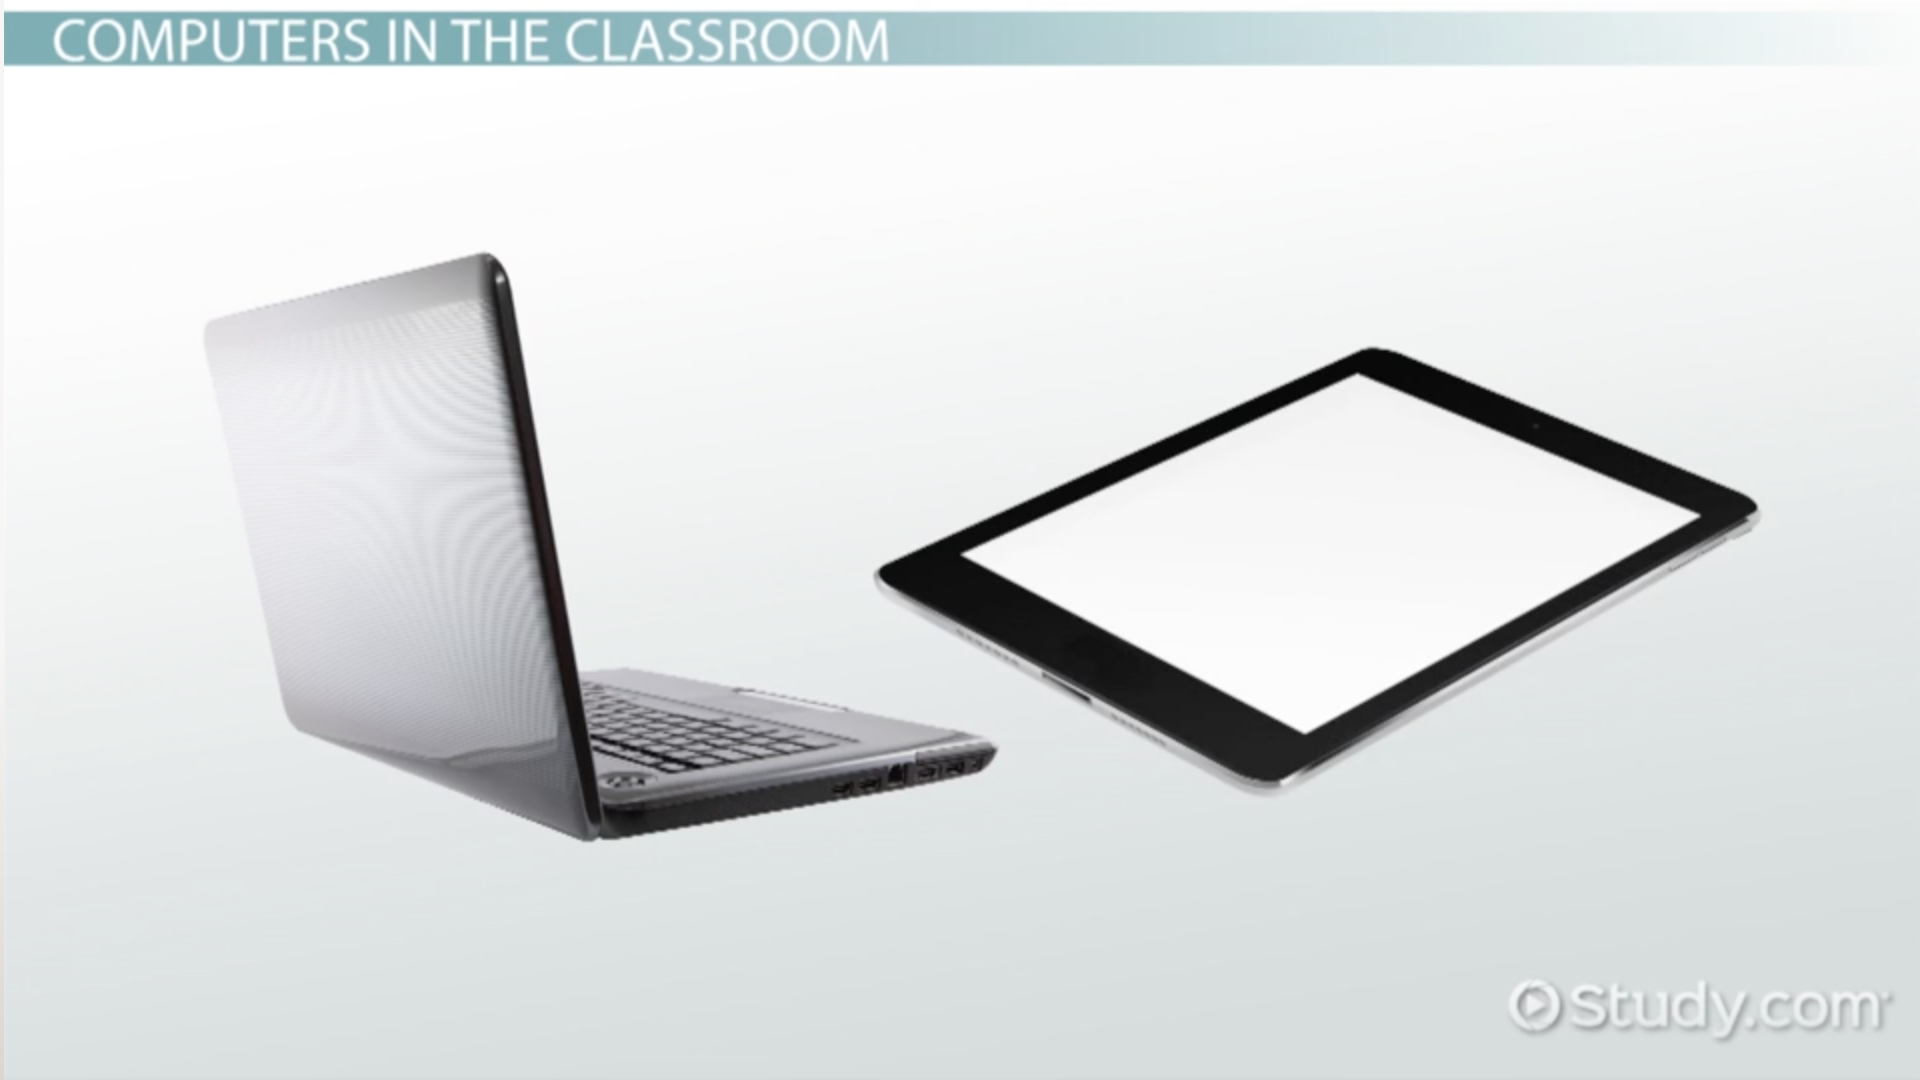 technology in the classroom advantages disadvantages video computers in the classroom benefits disadvantages